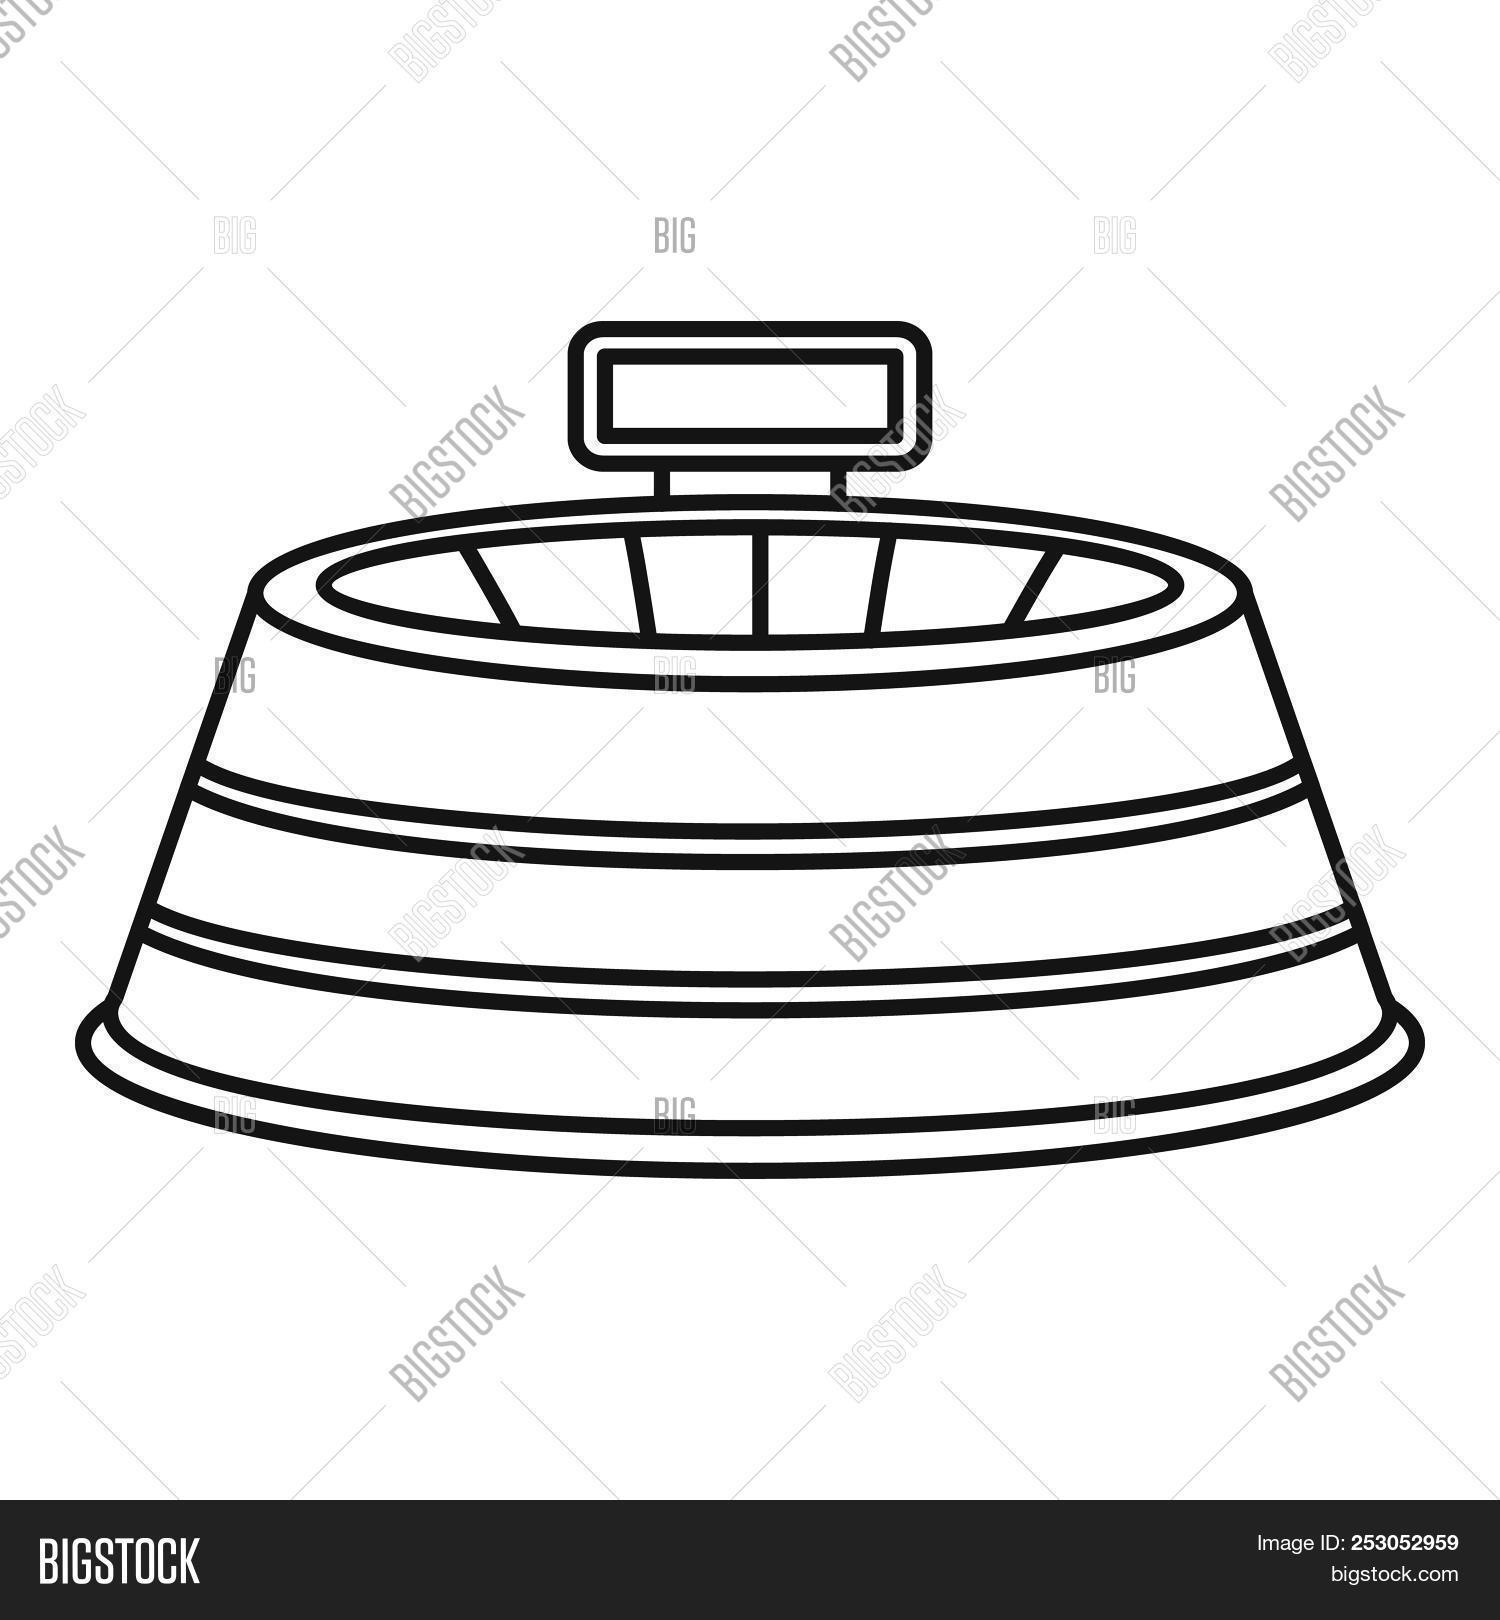 above,area,arena,background,ball,basket,black,board,boundary,center,championship,circle,competition,court,cricket,curve,dimensions,field,floor,game,gym,hardwood,hoop,horizontal,icon,illustration,isolated,layout,line,outline,parquet,pitch,plan,play,player,point,recreation,rough,sport,texture,textured,thin,three,top,tournament,training,white,winner,wood